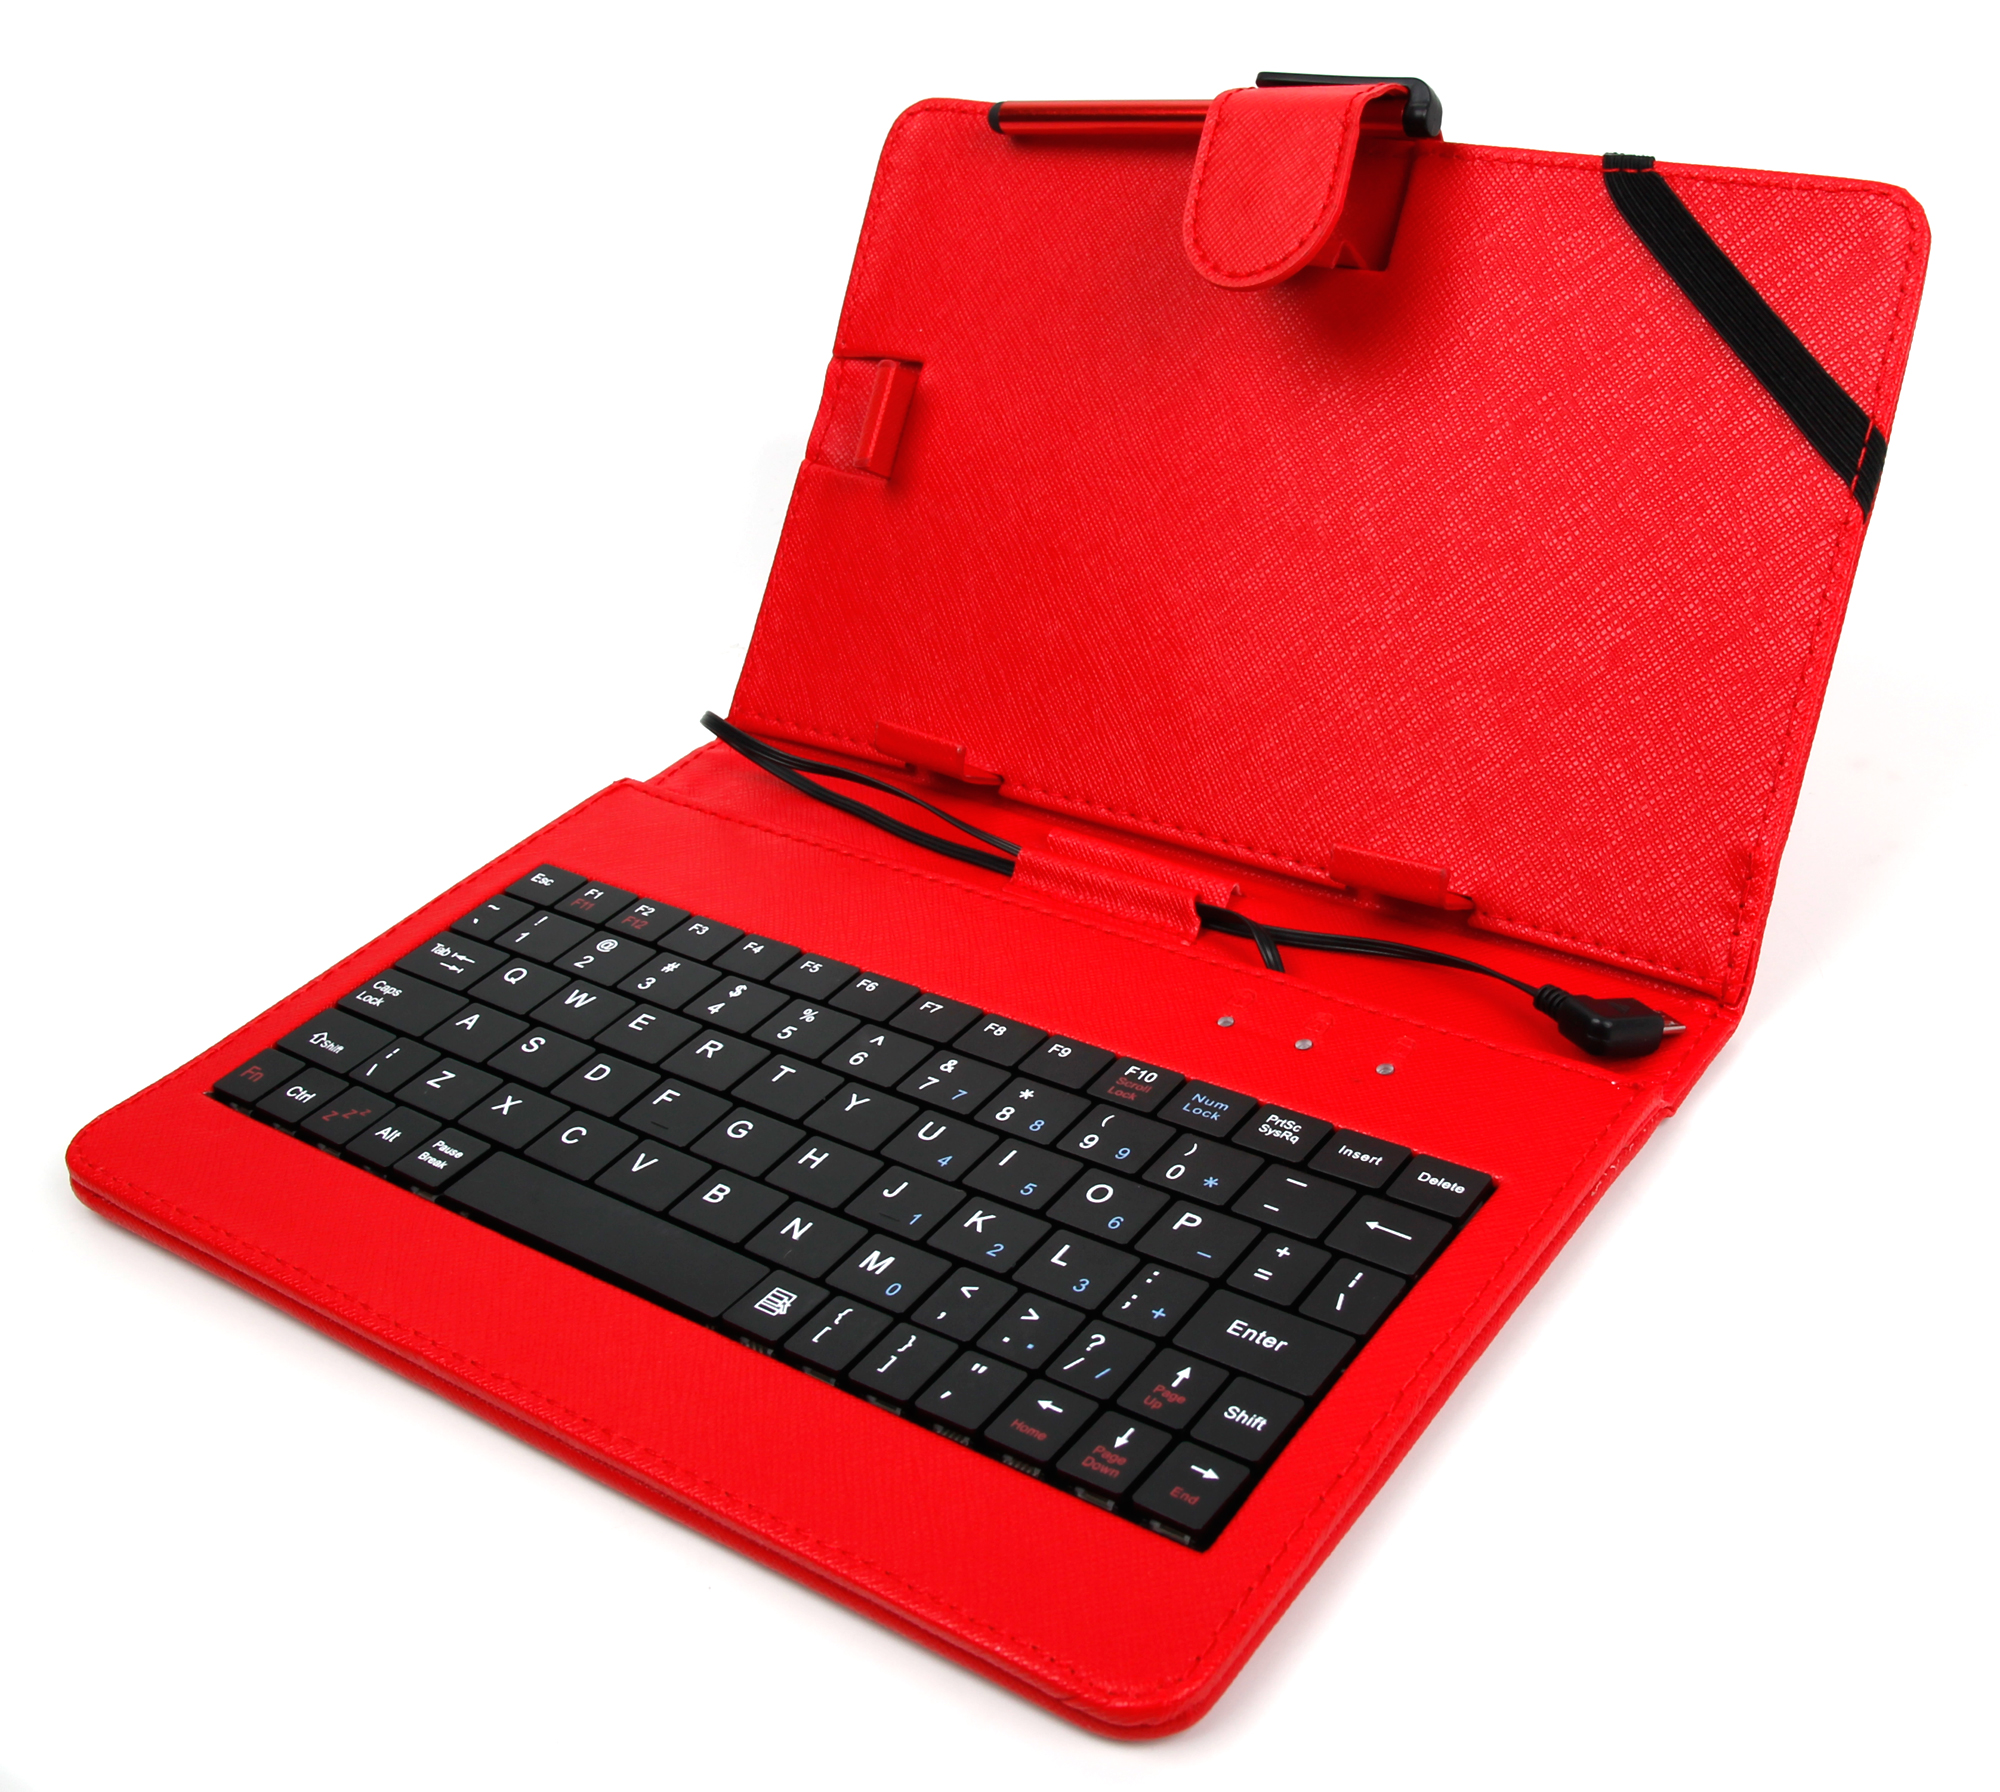 etui clavier qwerty rouge support pour tablette 7 pouces samsung archos acer ebay. Black Bedroom Furniture Sets. Home Design Ideas